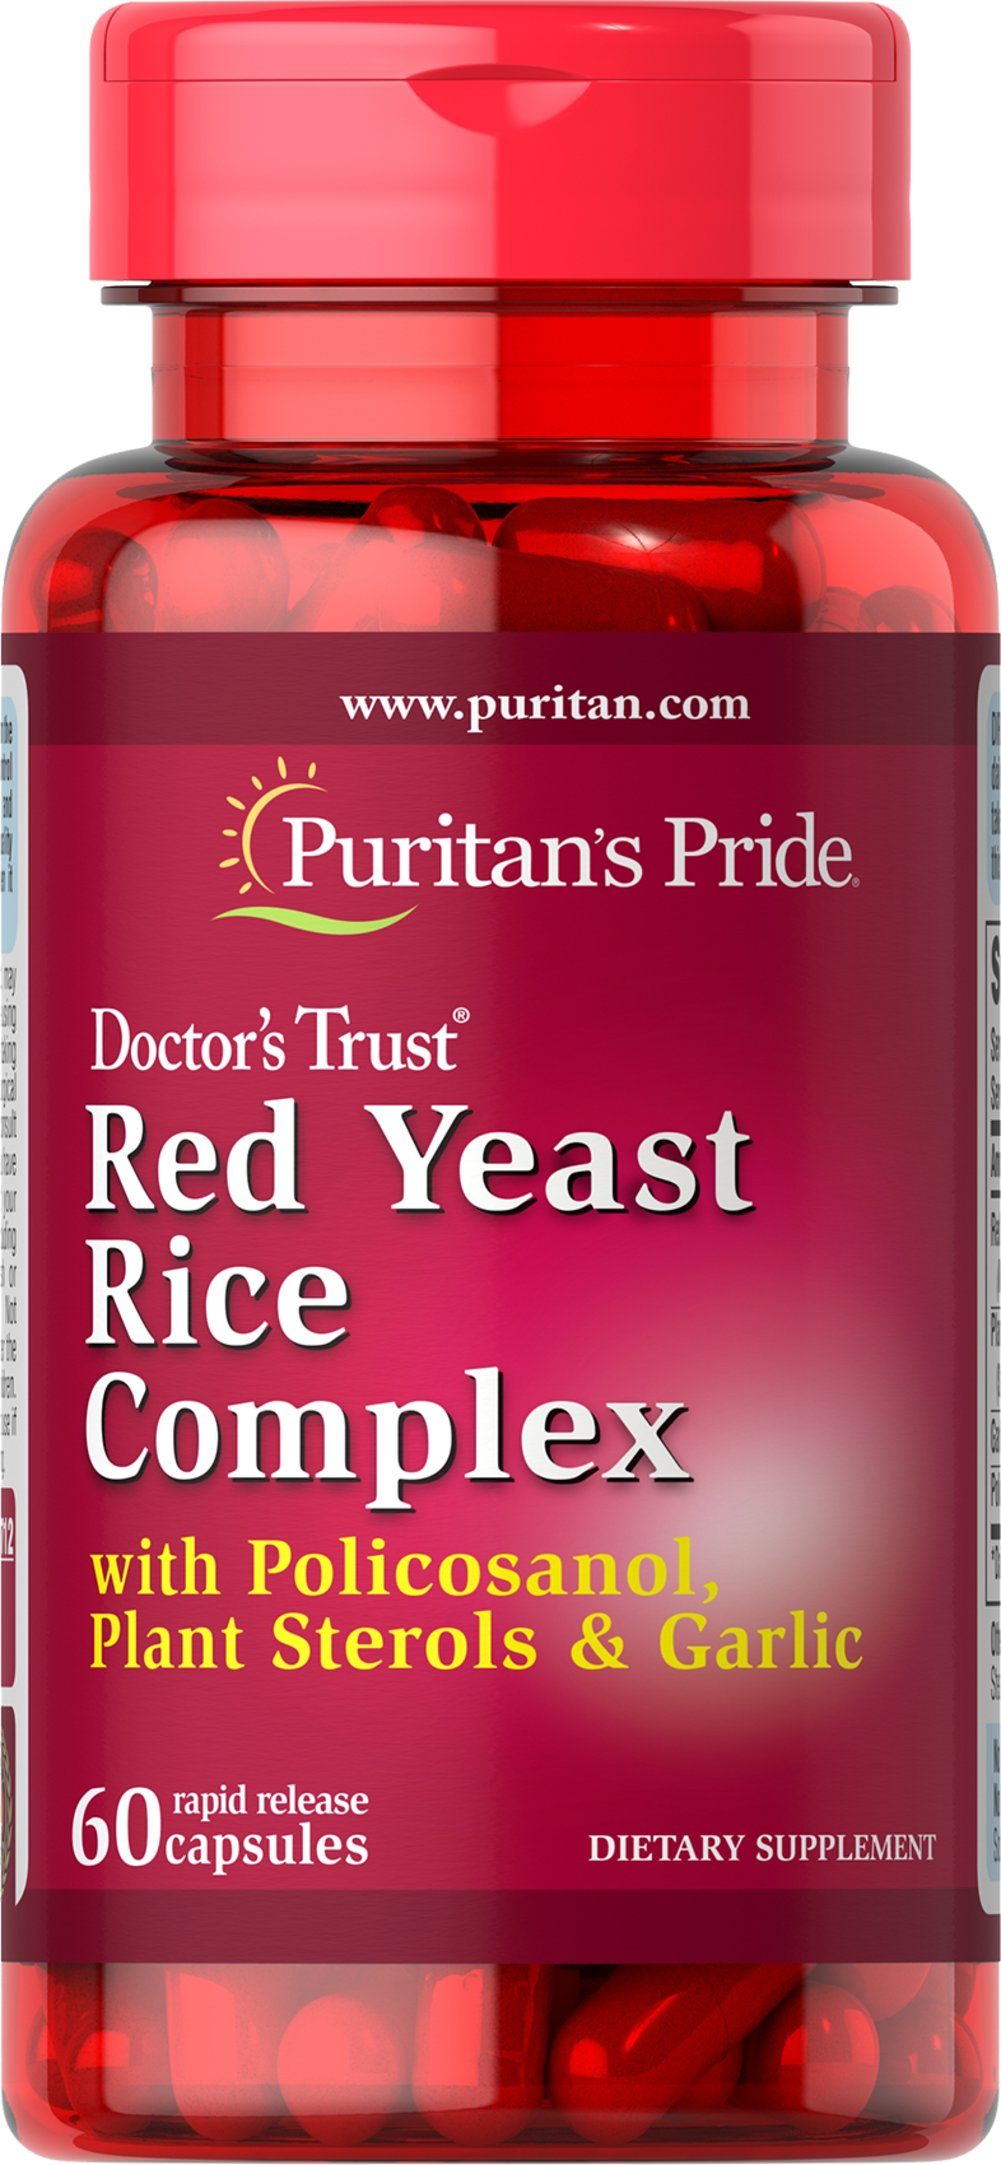 Red Yeast Rice Complex <p>Red Yeast Rice has been a staple food of the traditional Chinese diet for centuries. Valued as a main food source as well as for other uses, Red Yeast Rice can be a healthy addition to your diet.**  Three capsules contain 1200 mg of Red Yeast Rice Powder from the Chinese botanical Monascus purpureus, 500 mg Plant Sterols, 500 mg Garlic and 20 mg Policosanol.</p> 60 Capsules  $29.99